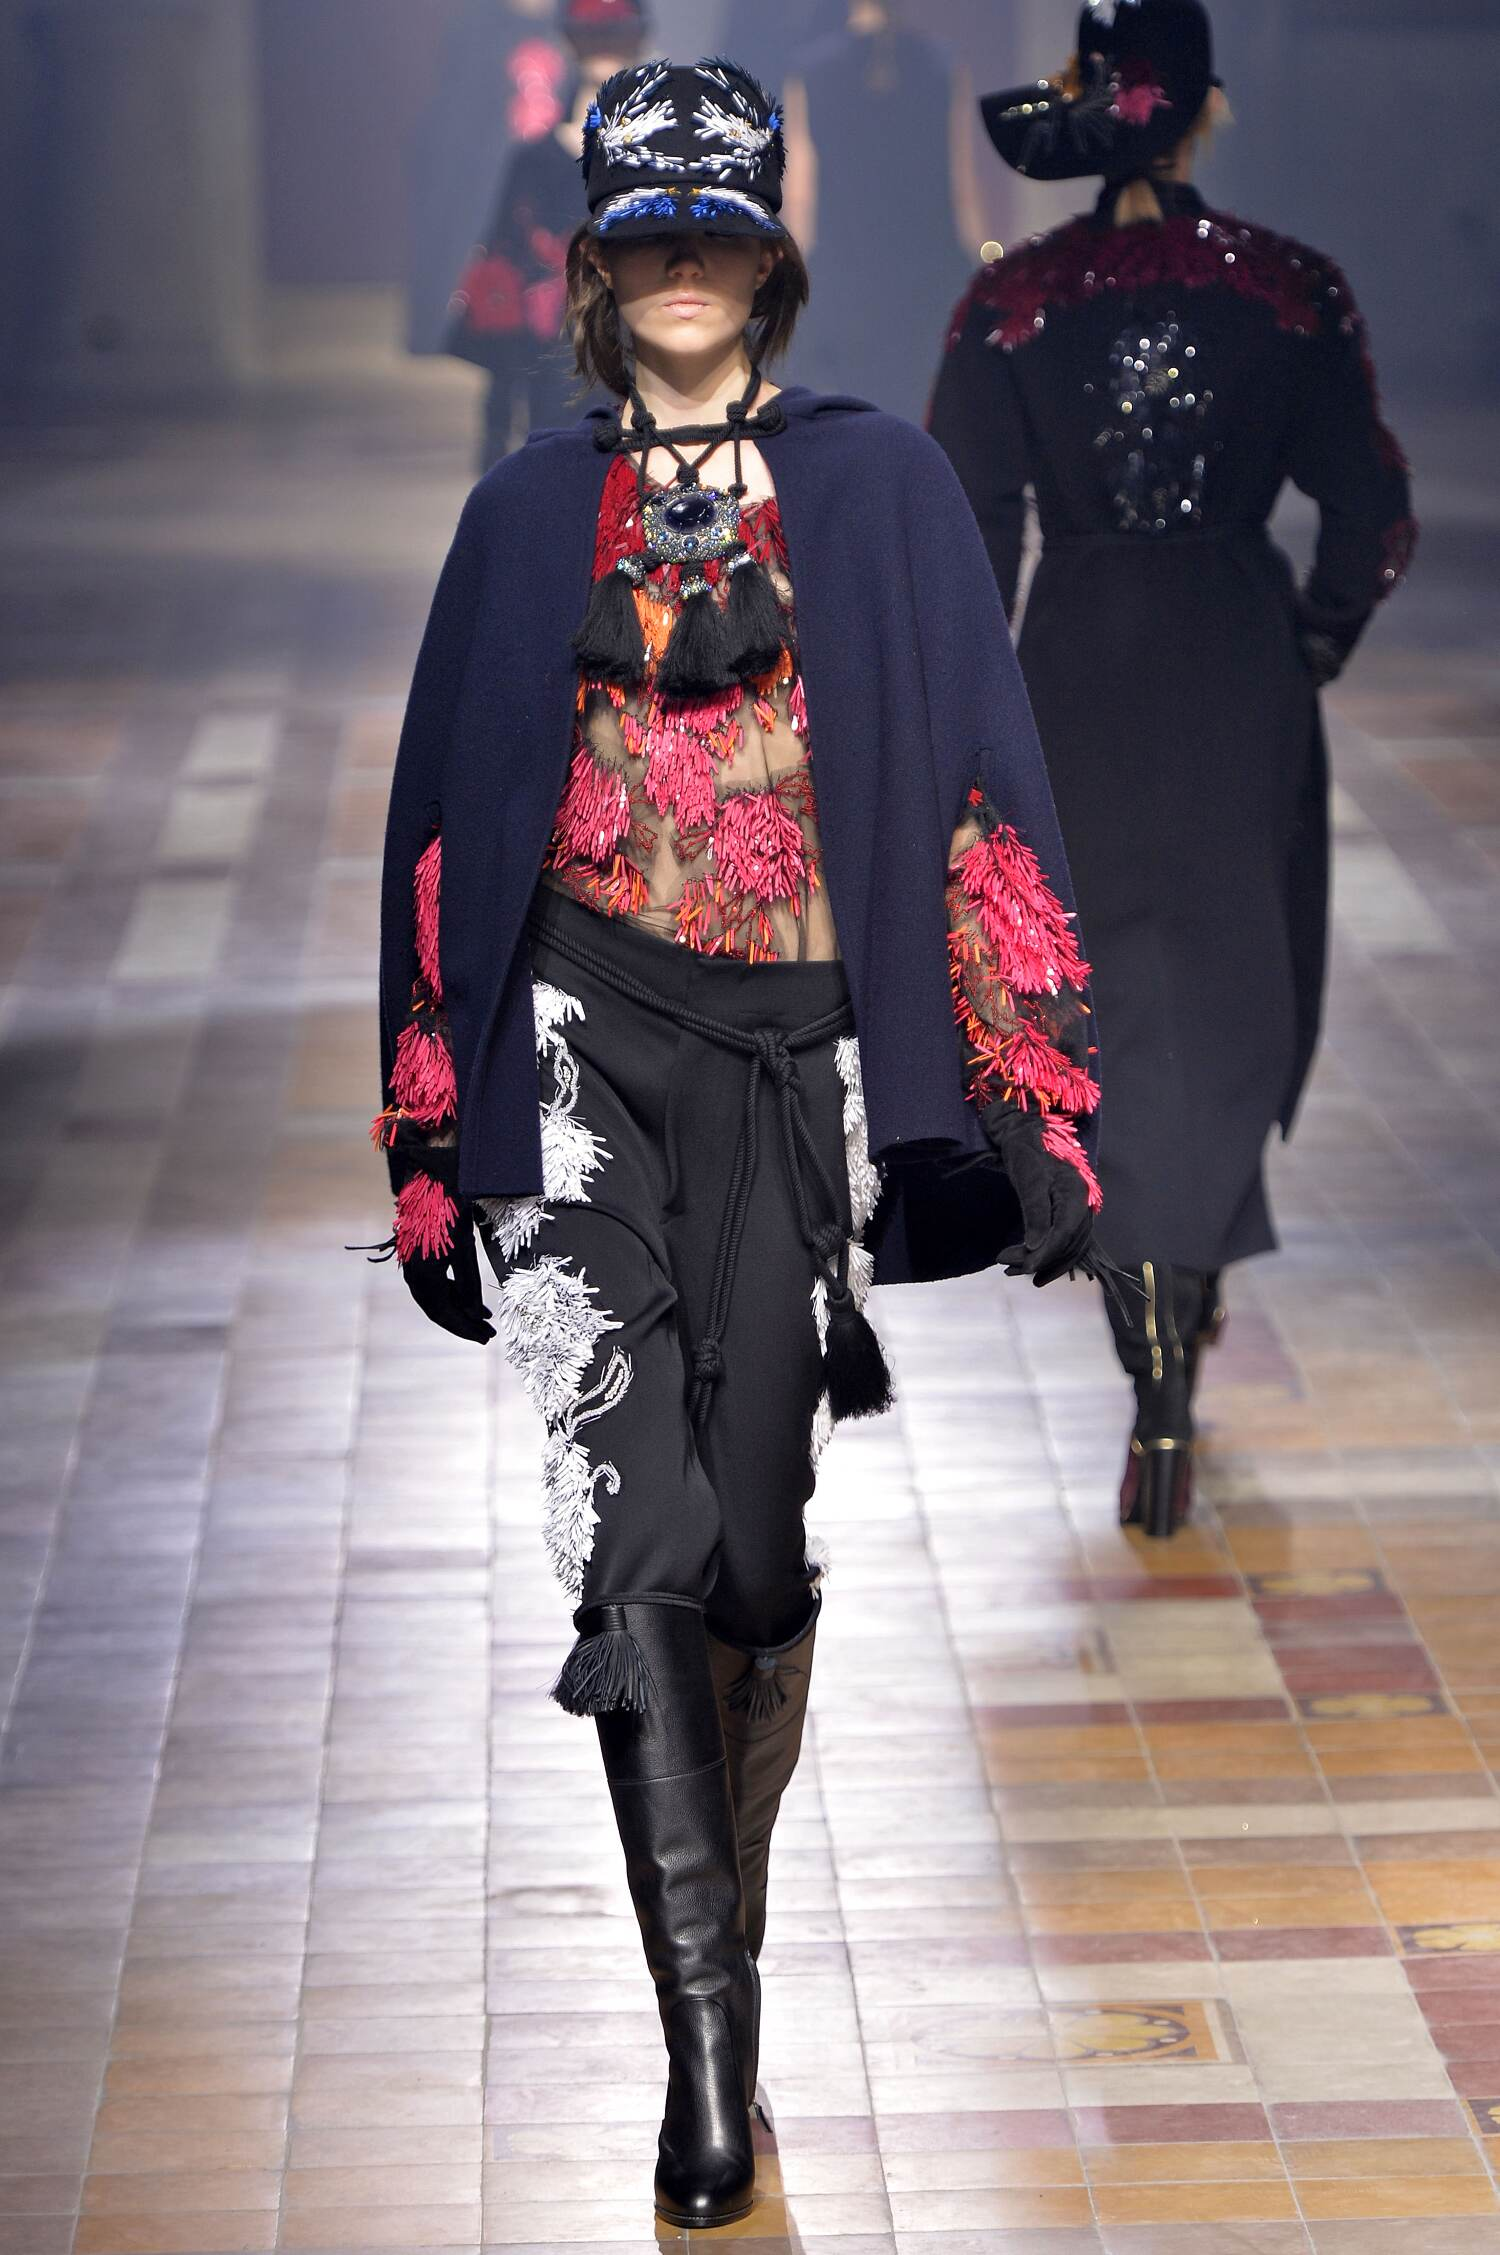 2015 Winter Fashion Show Lanvin Collection